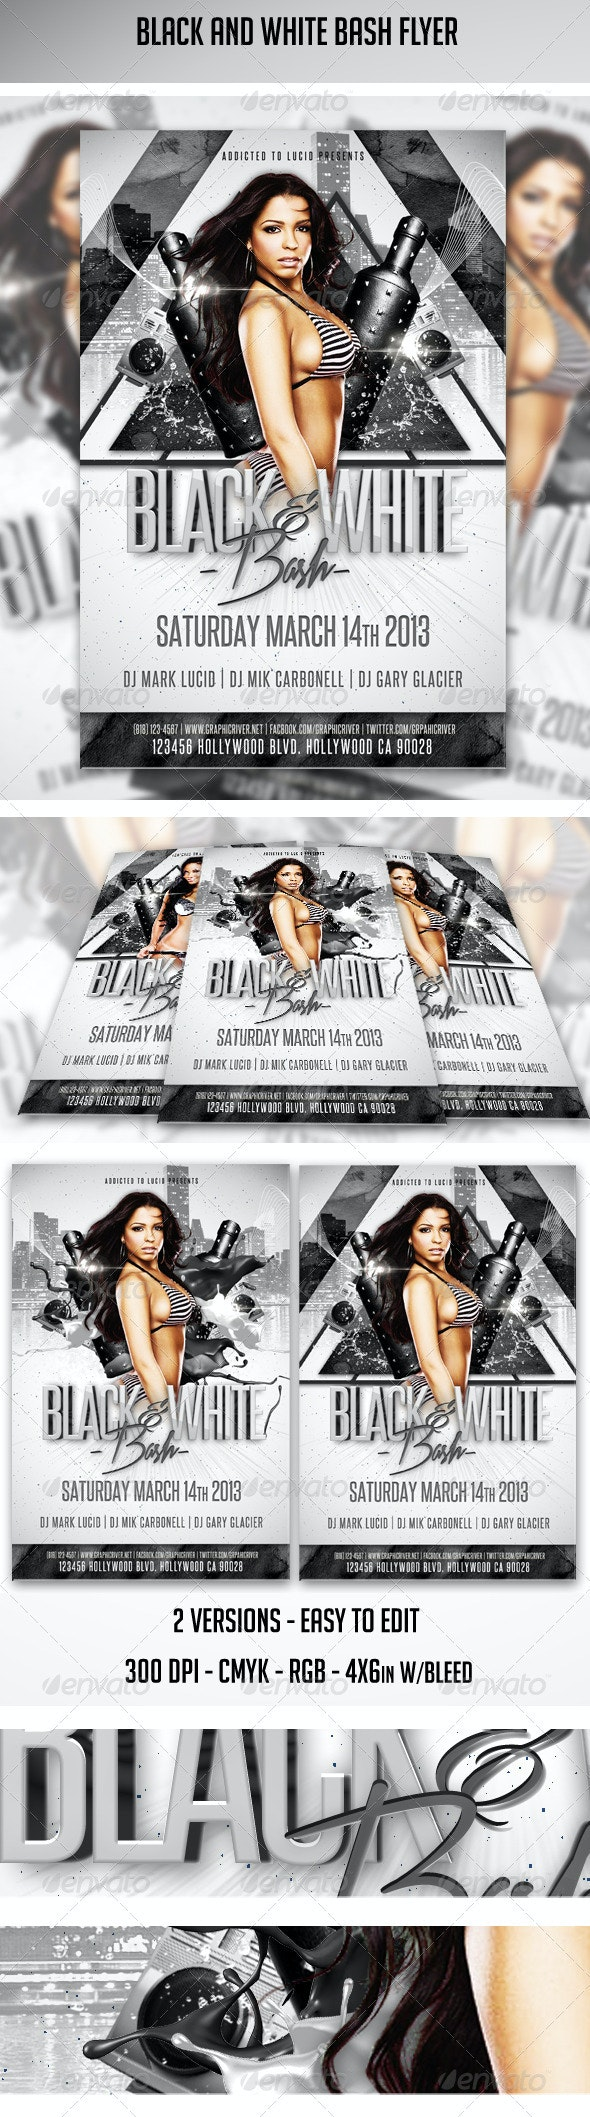 Black And White Bash Flyer - Clubs & Parties Events